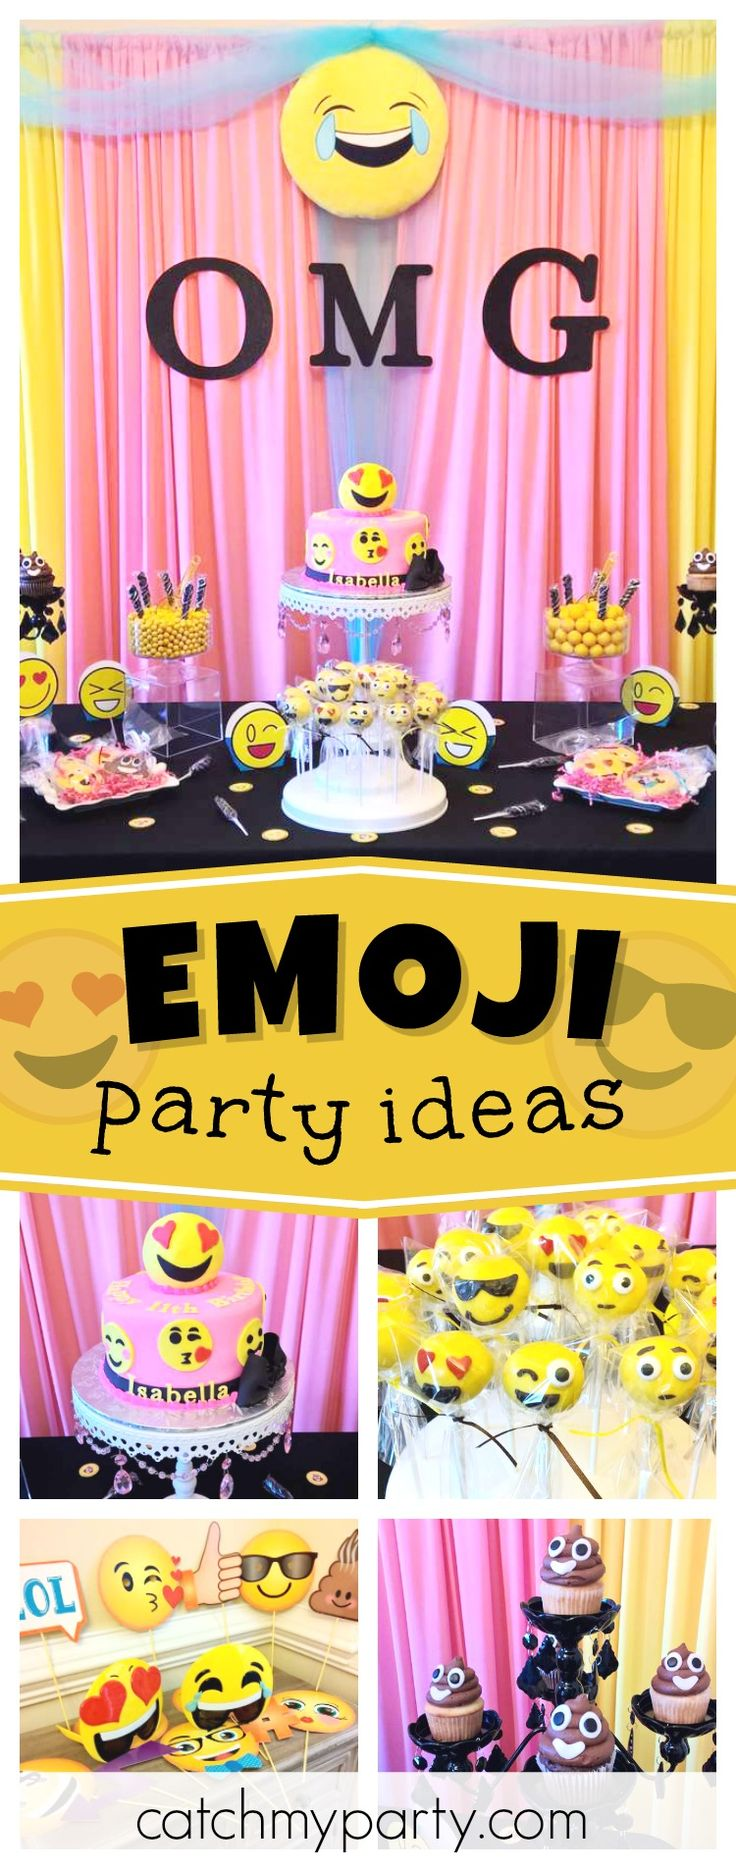 129 best Emoji Party Ideas images on Pinterest | Birthdays ...